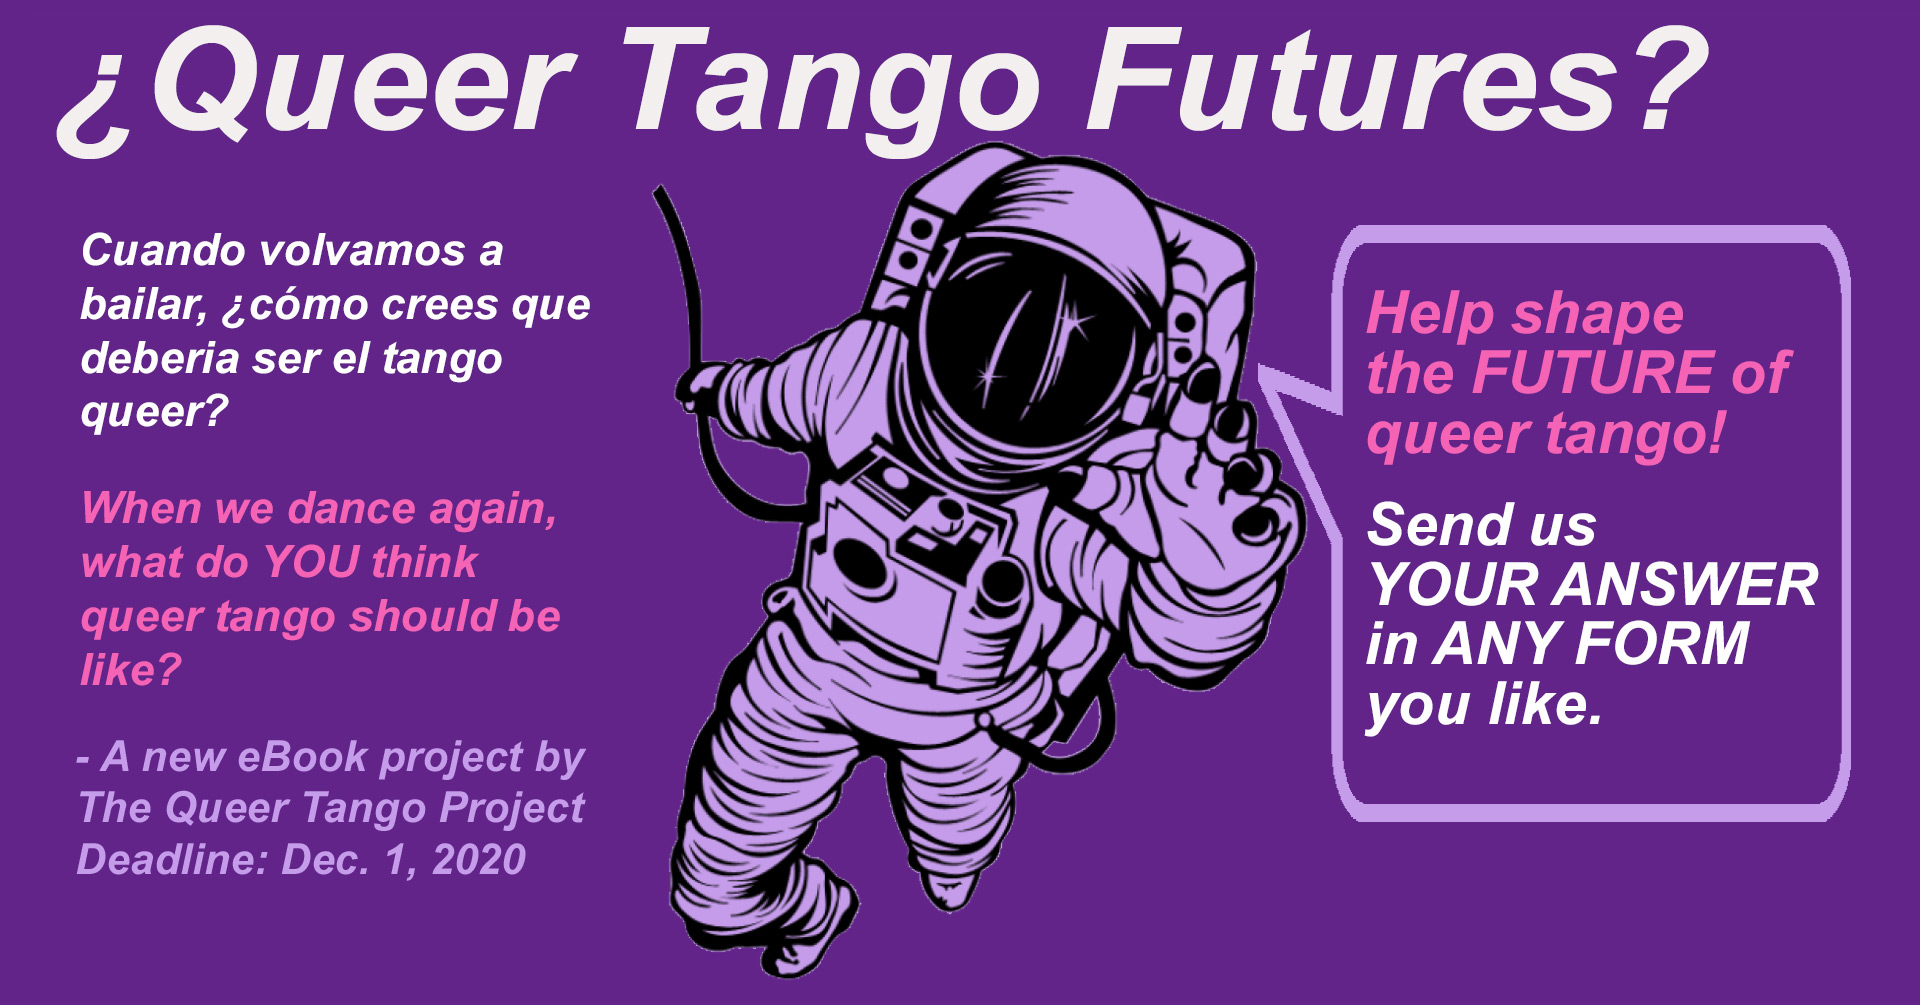 ¿Queer Tango Futures? – What should queer tango be like in the future?